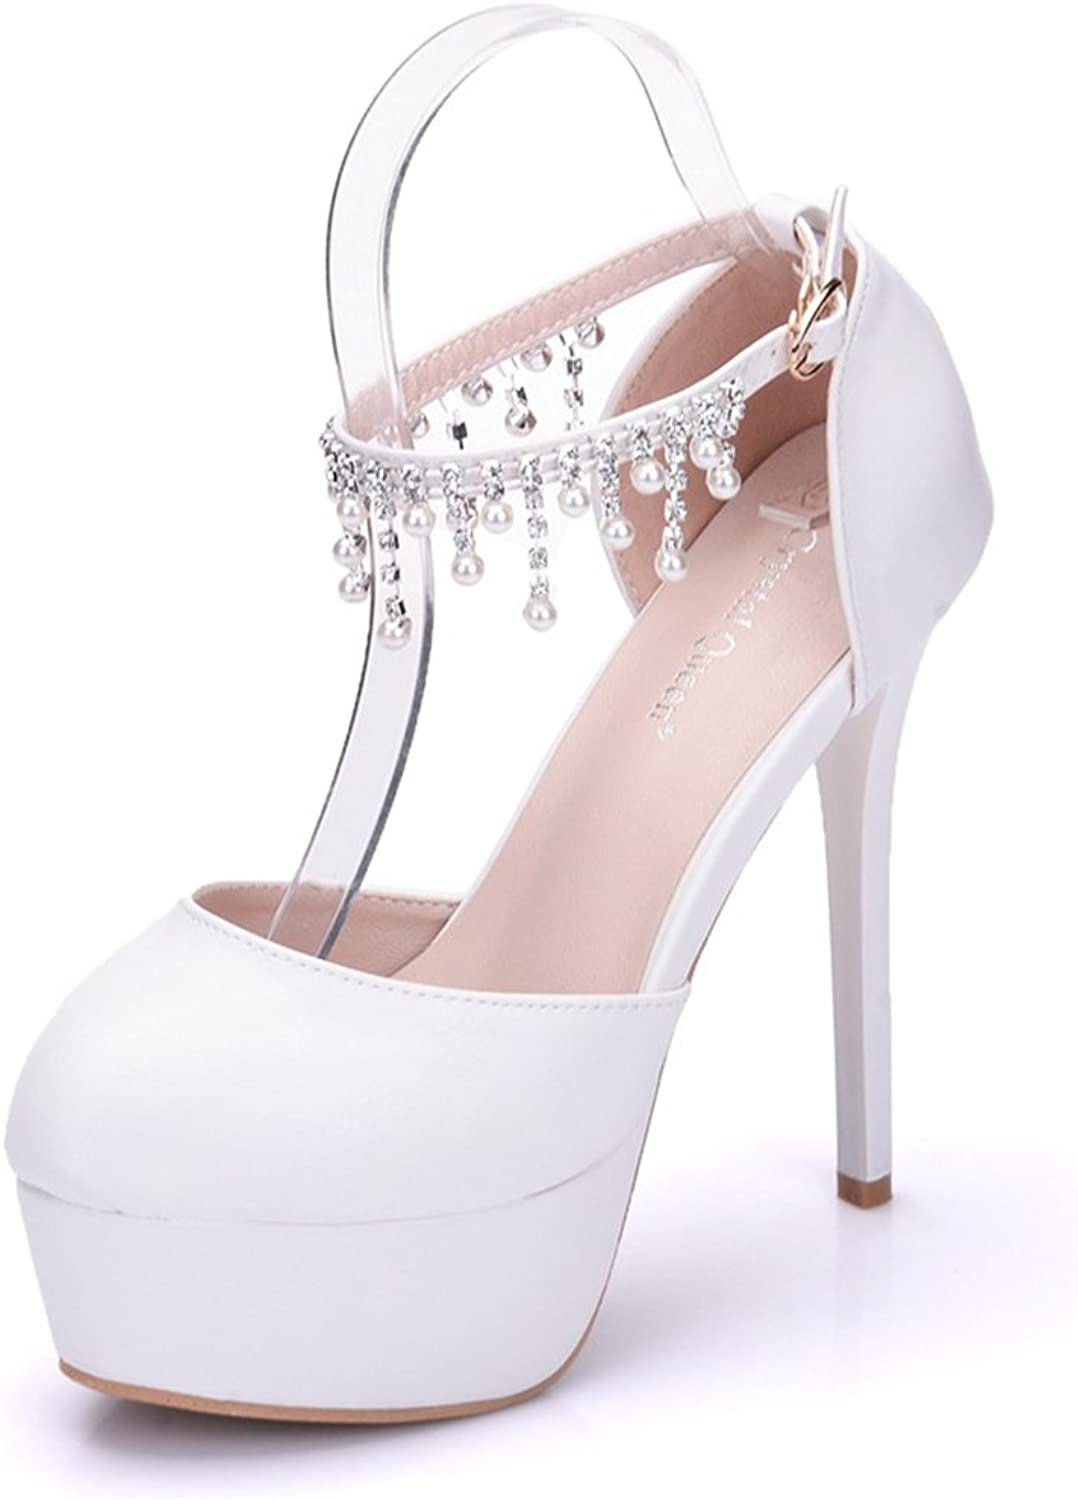 TUYPSHOES Women Pumps Closed Toe Platform High Heel Buckle Lace Wedding Bridal shoes